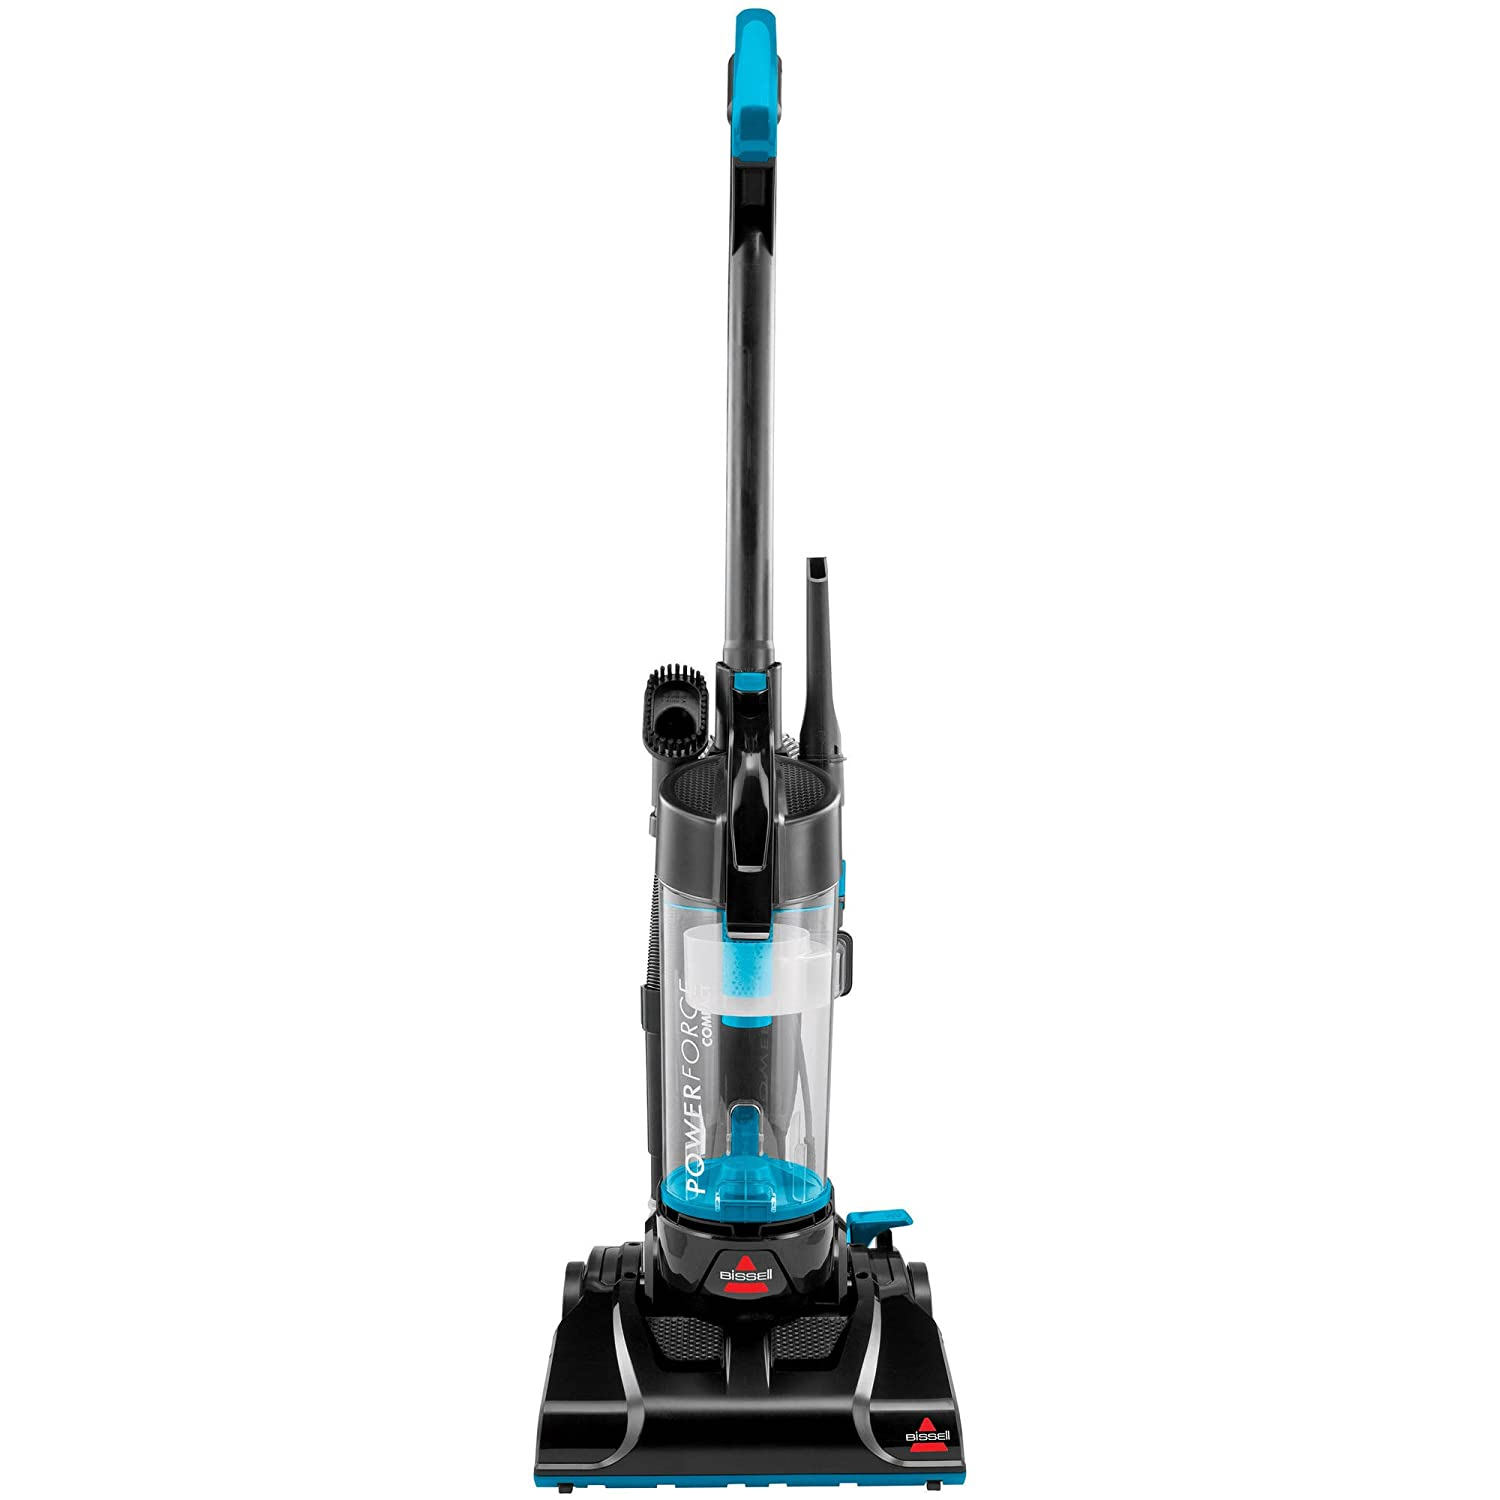 Shop amazon stick vacuums electric brooms bissell powerforce lightweight compact corded bagless cyclonic upright vacuum cleaner blue fandeluxe Gallery